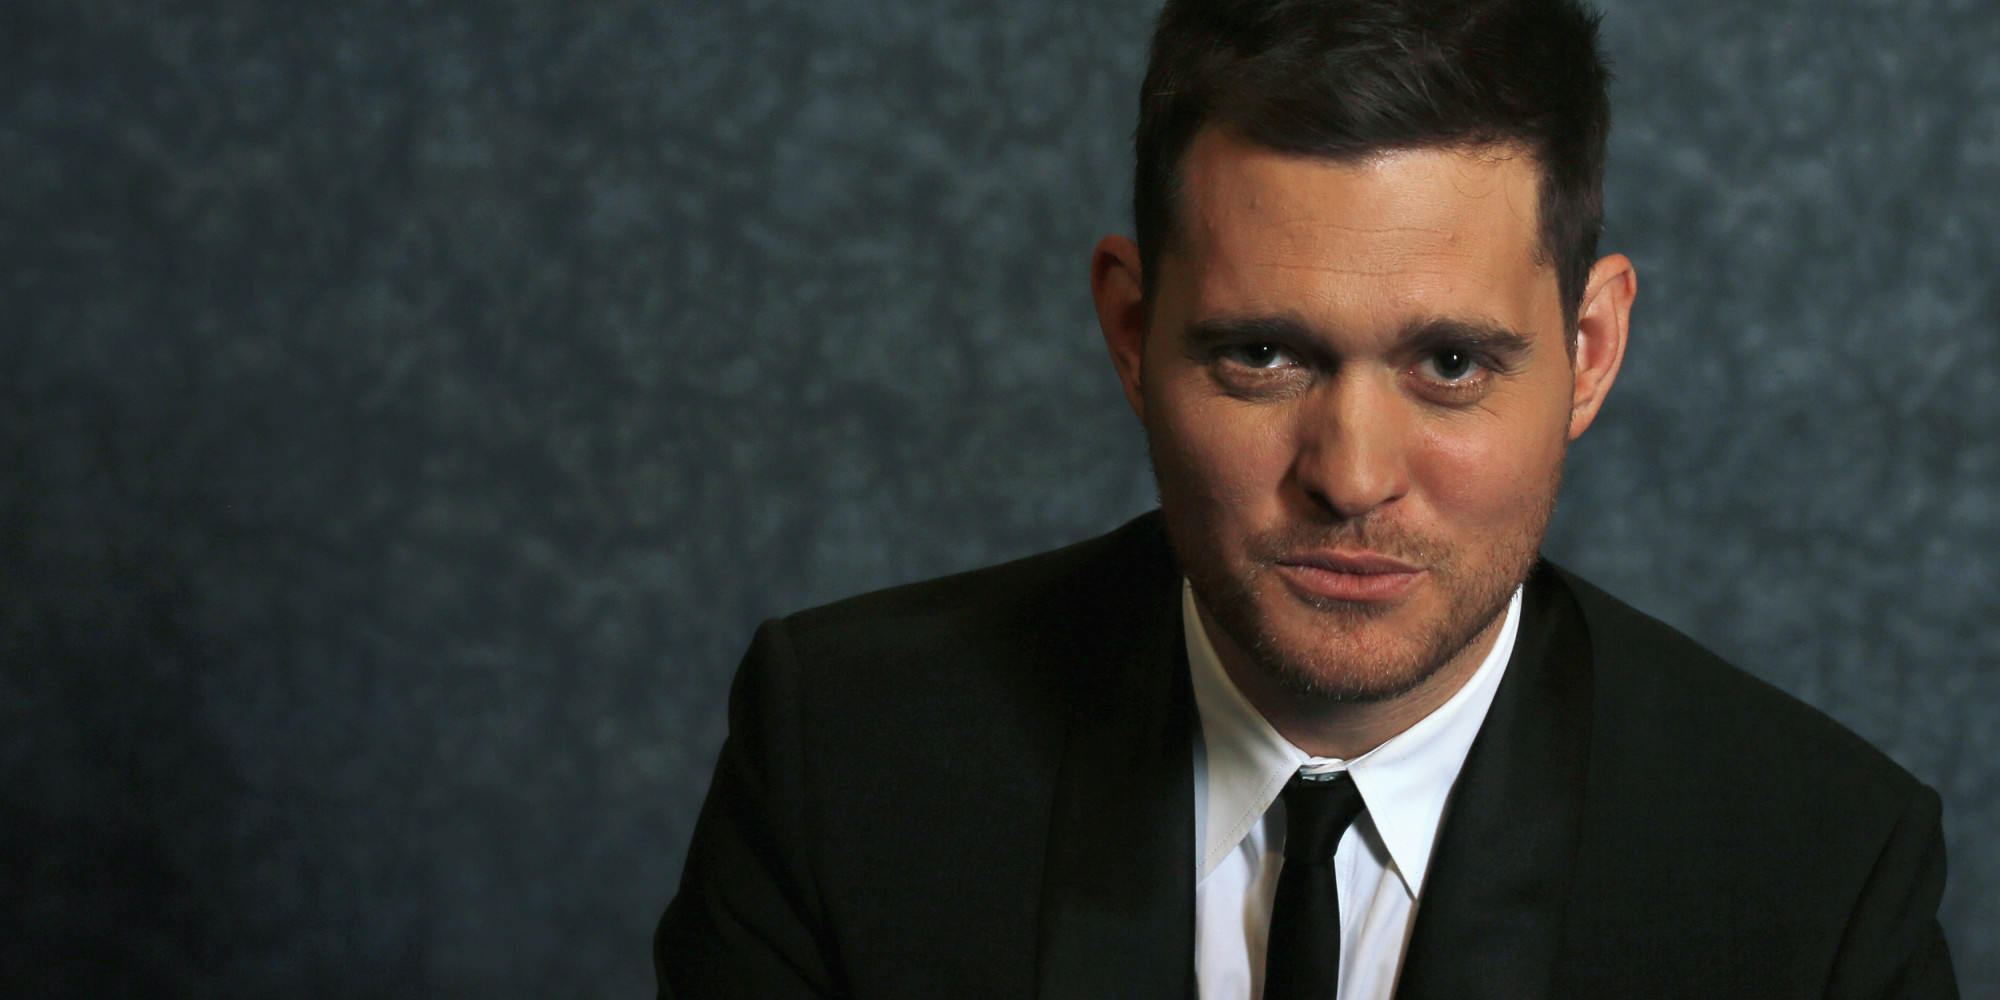 michael buble calls himself the babysitter when solo parenting